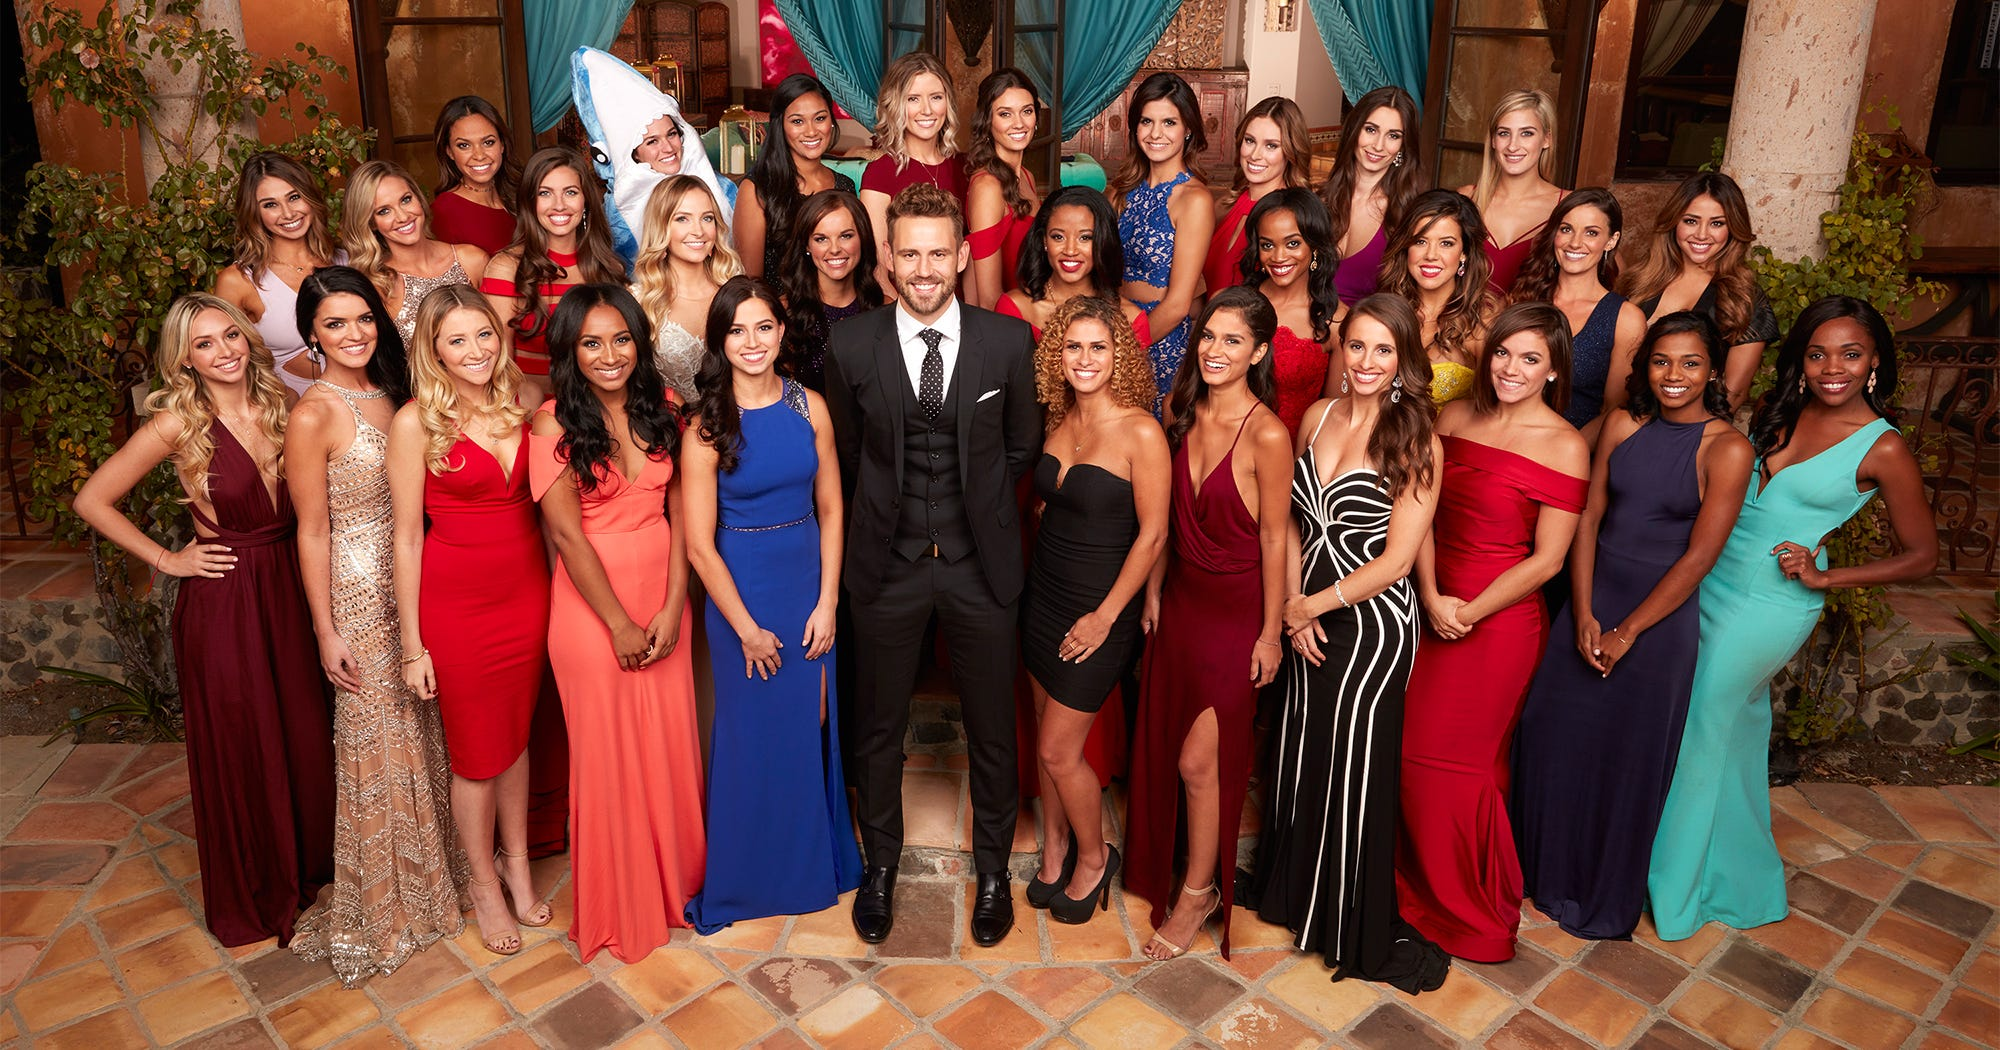 Bachelor Cast Weight Body Type No Plus Size Women Men